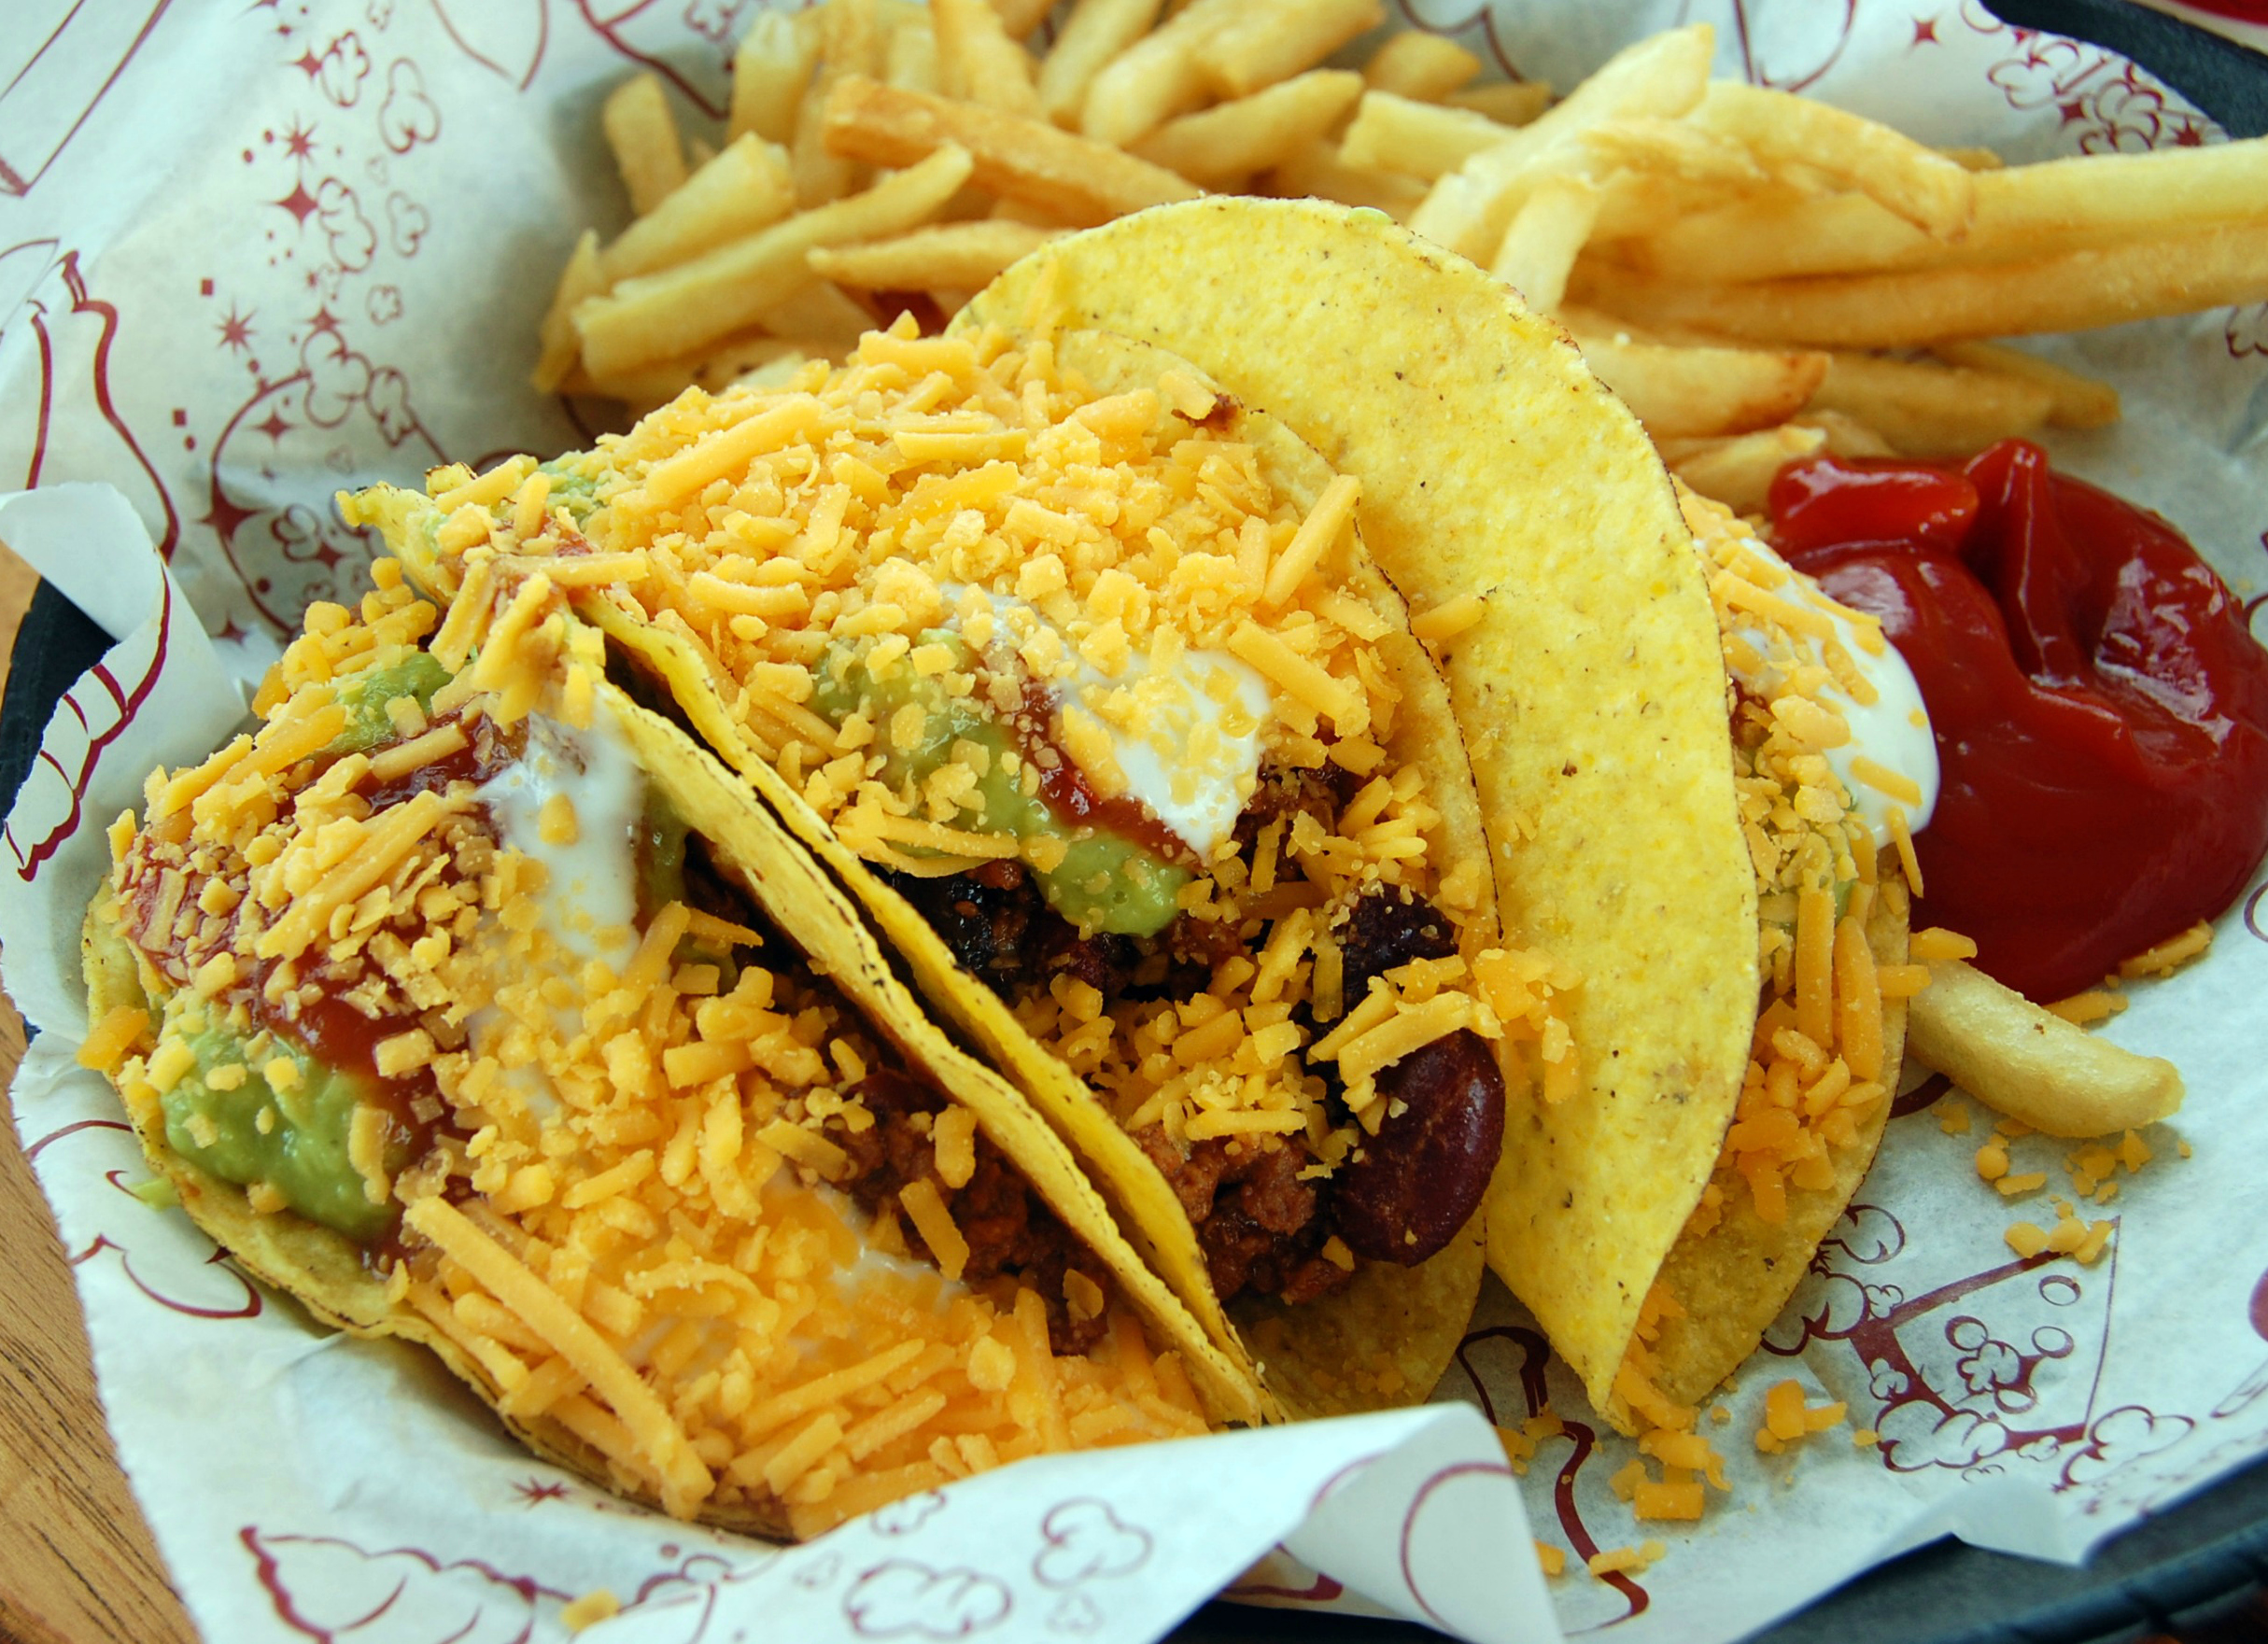 Tacos aboard the Disney Magic